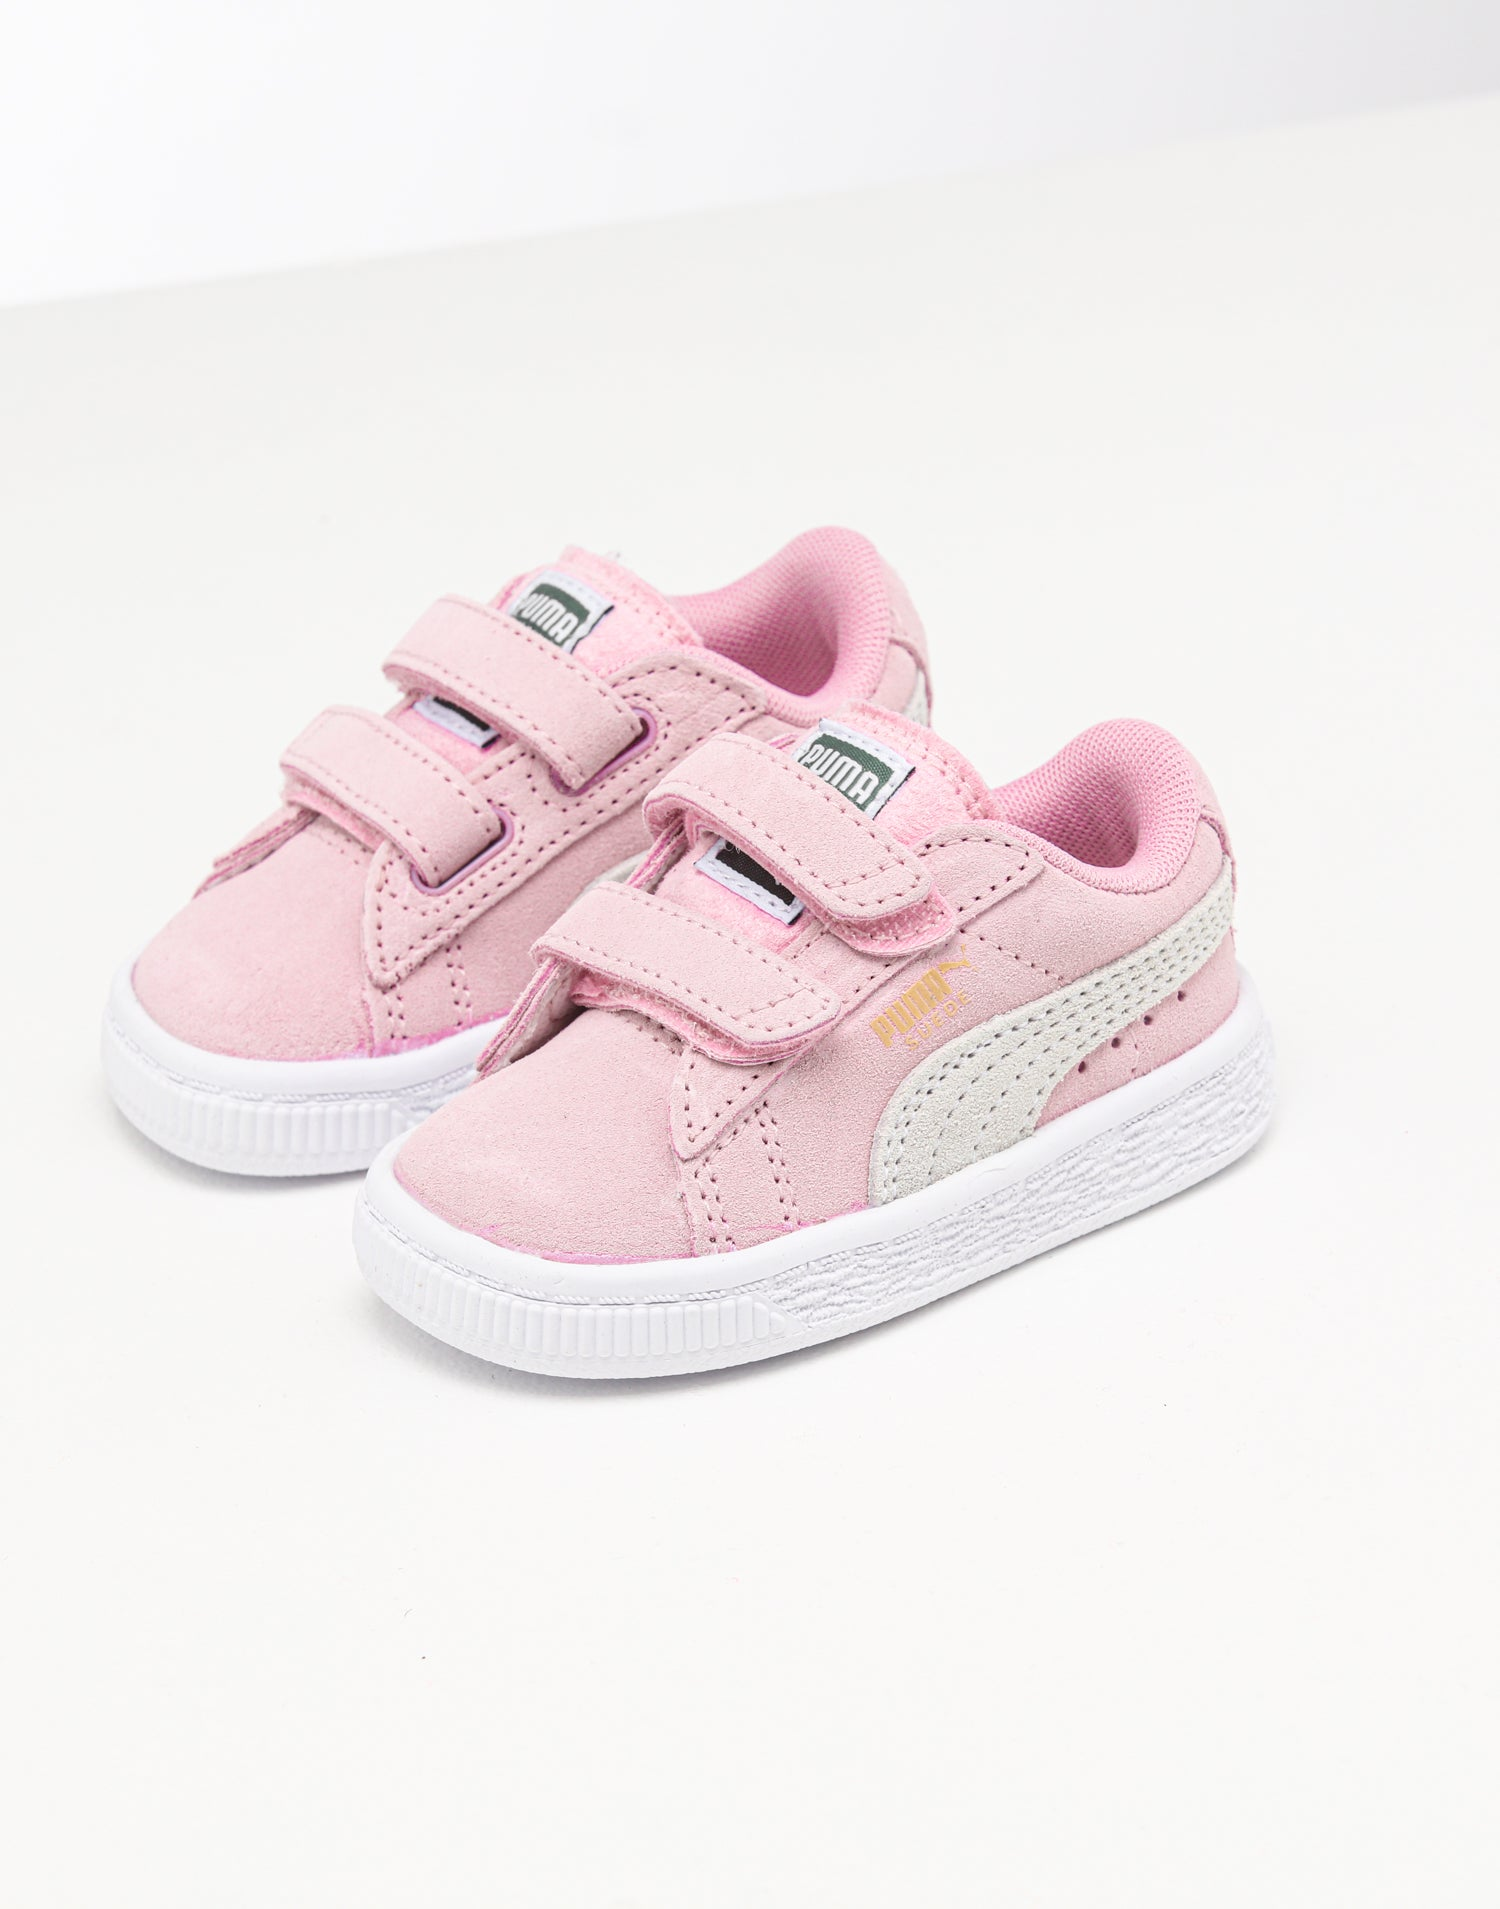 Infant Suede 2 Straps PinkGold